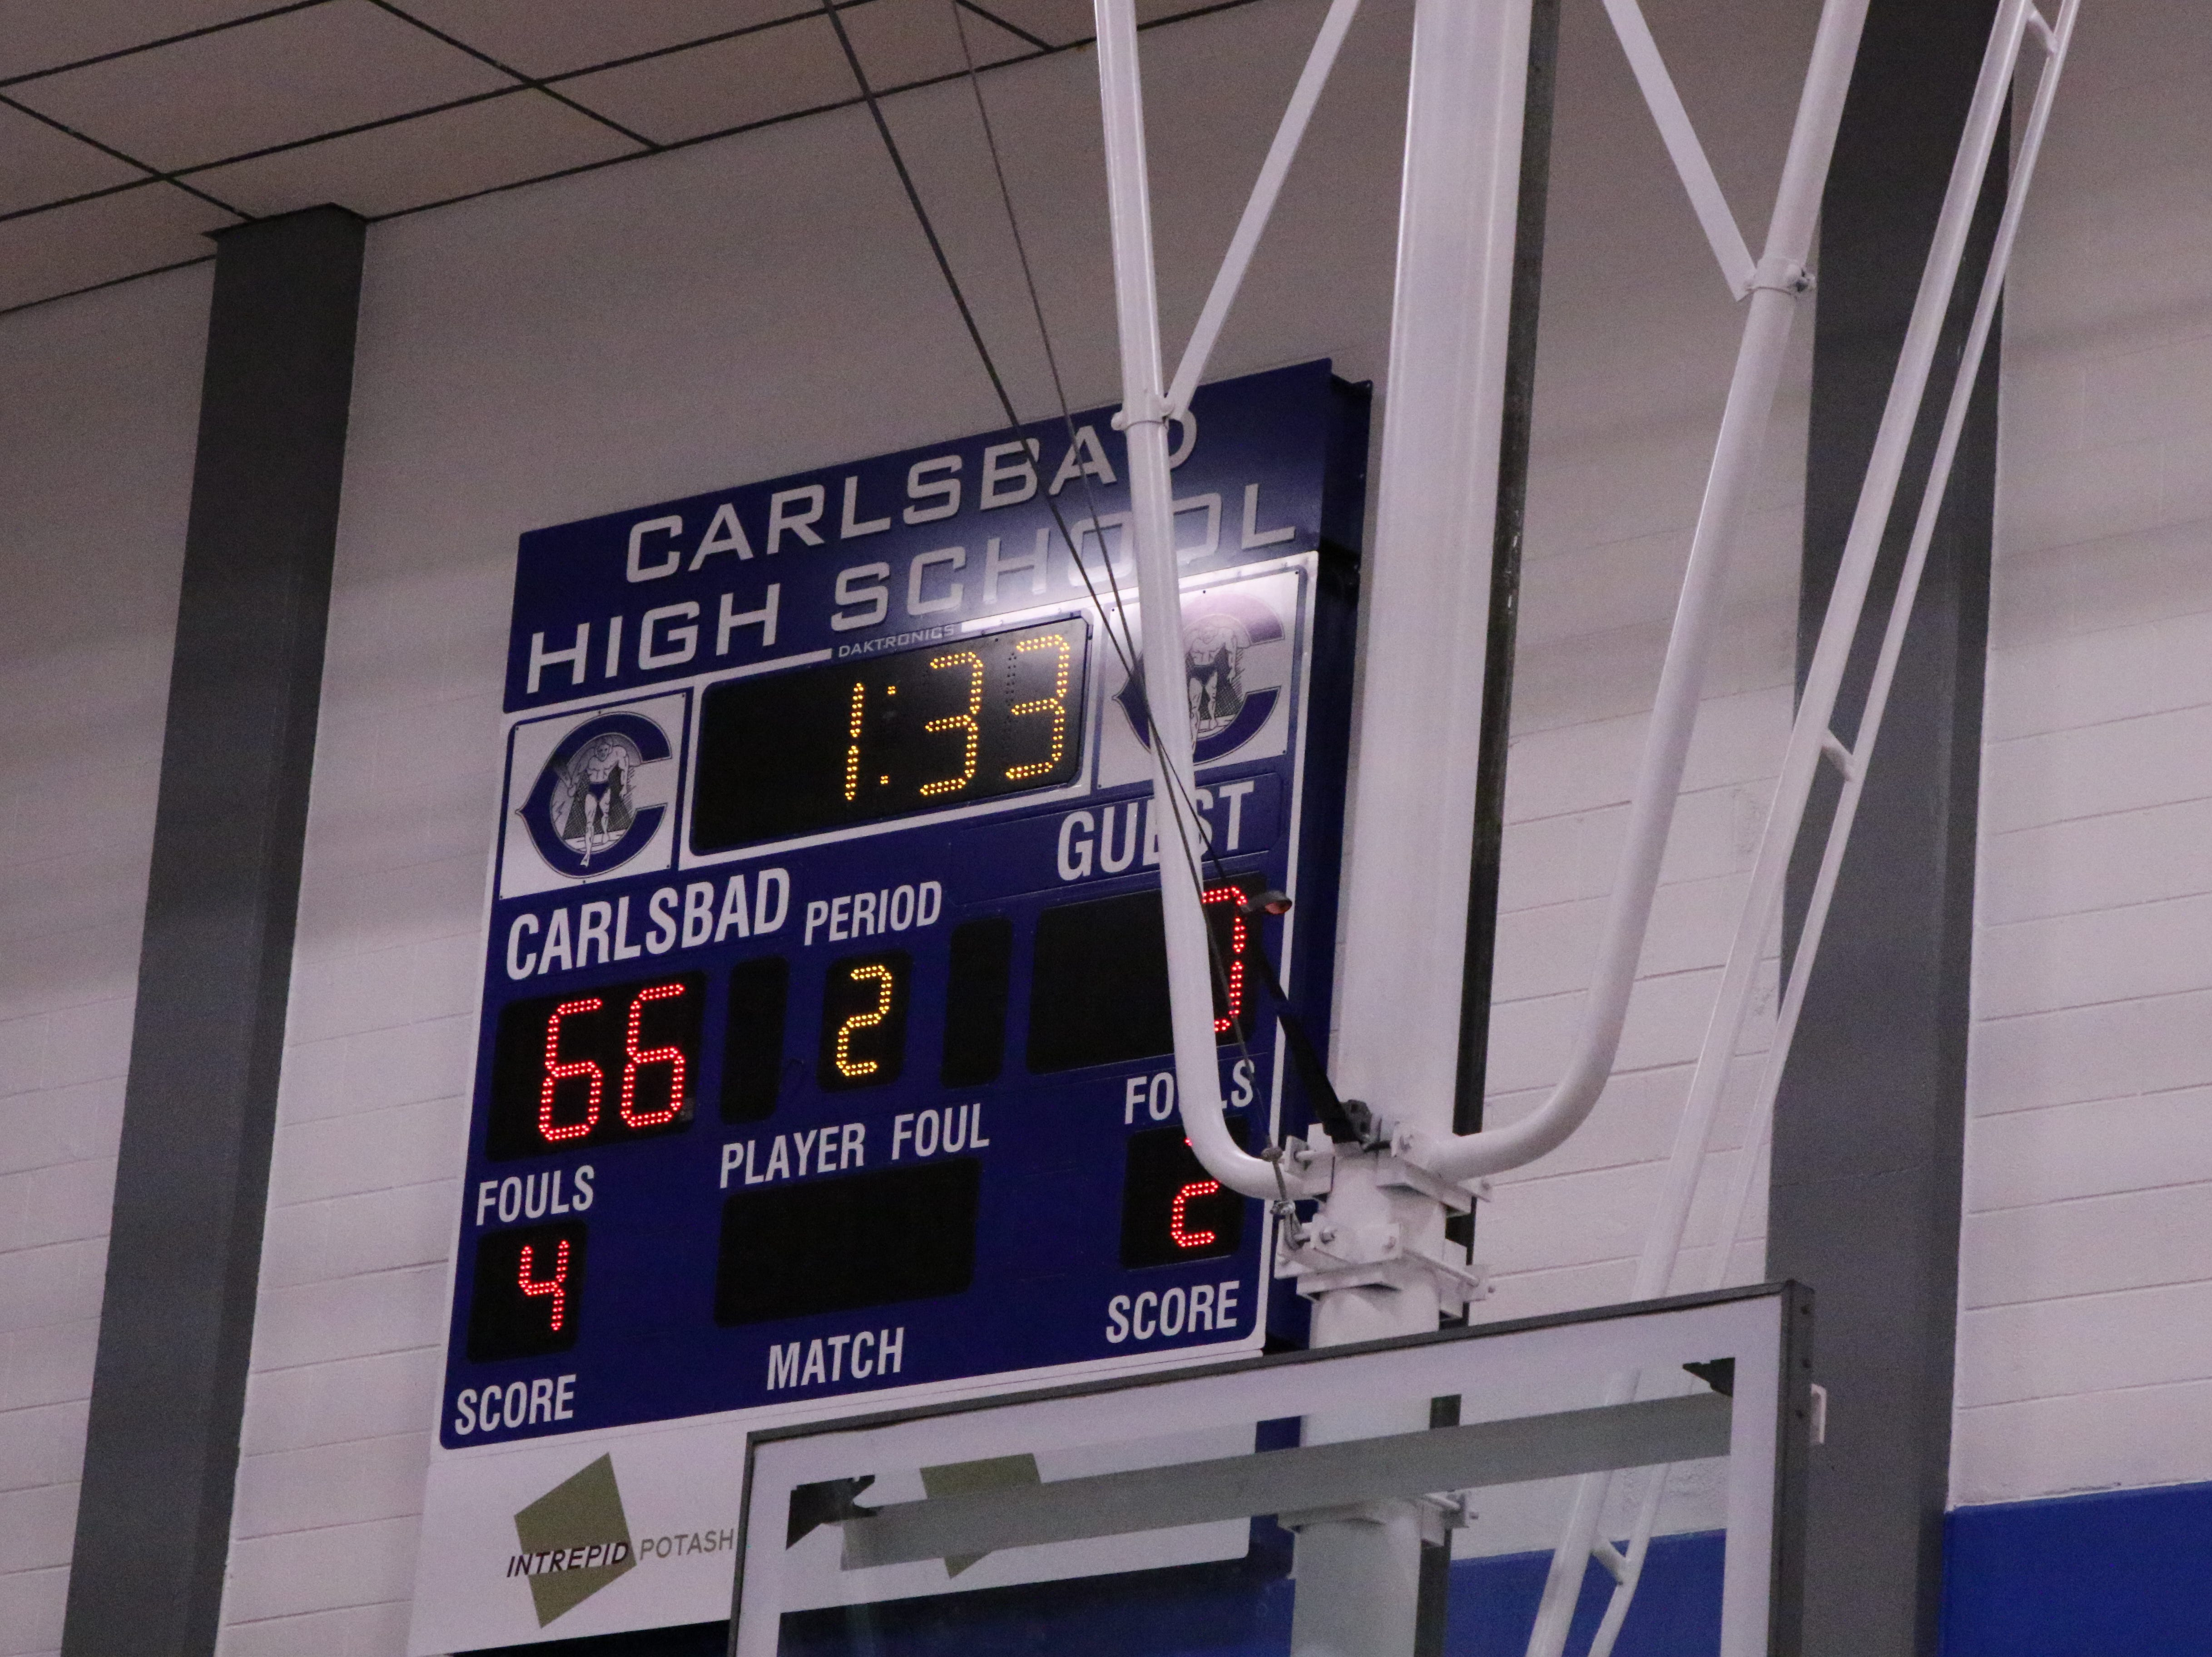 The score of the dual when Baca was injured. Carlsbad led, 66-0 with Baca up, 4-2.